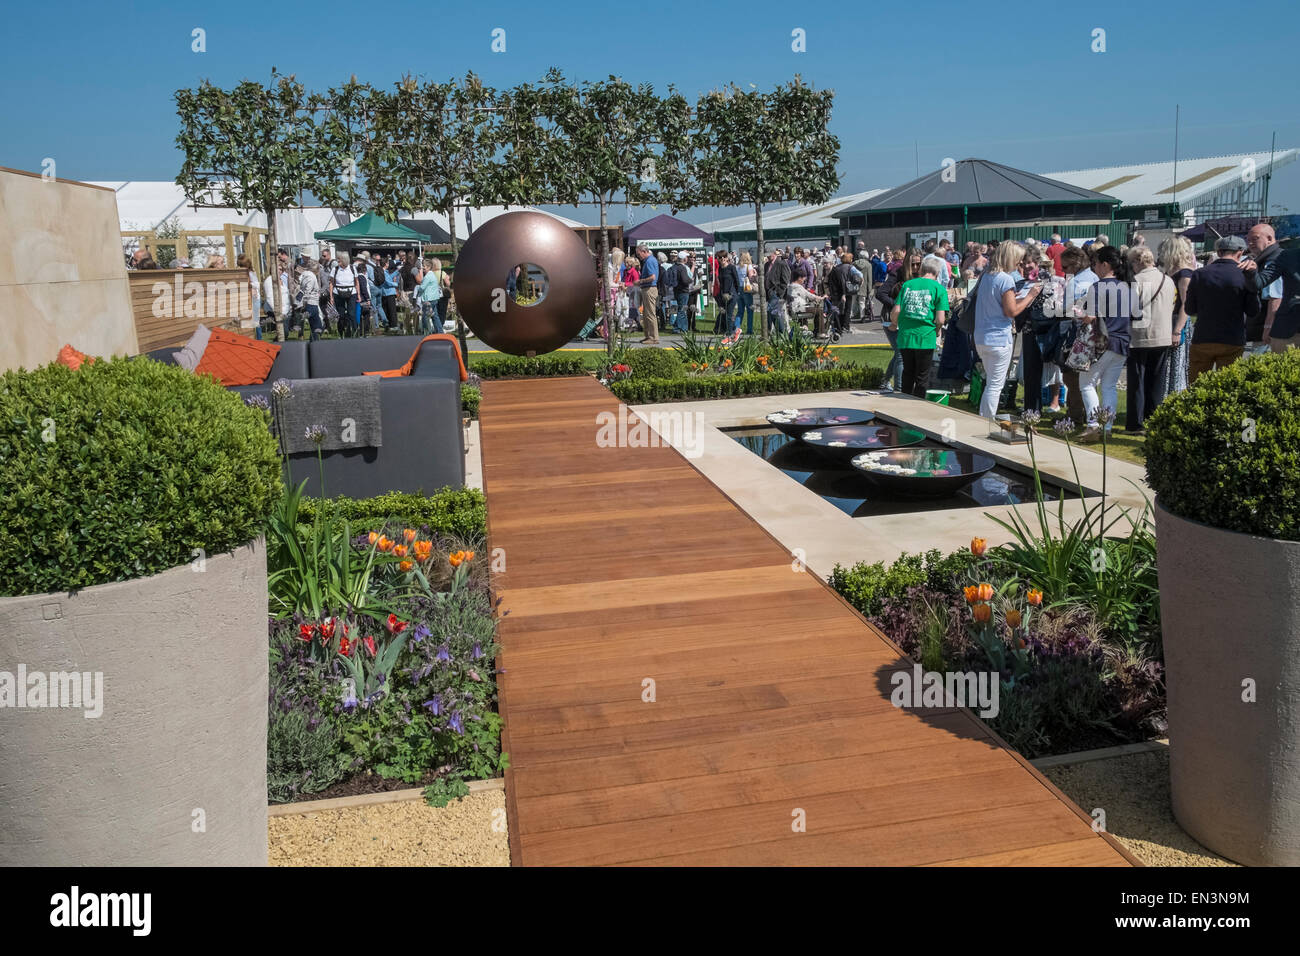 Modern Garden Design On Display At Harrogate Spring Flower Show